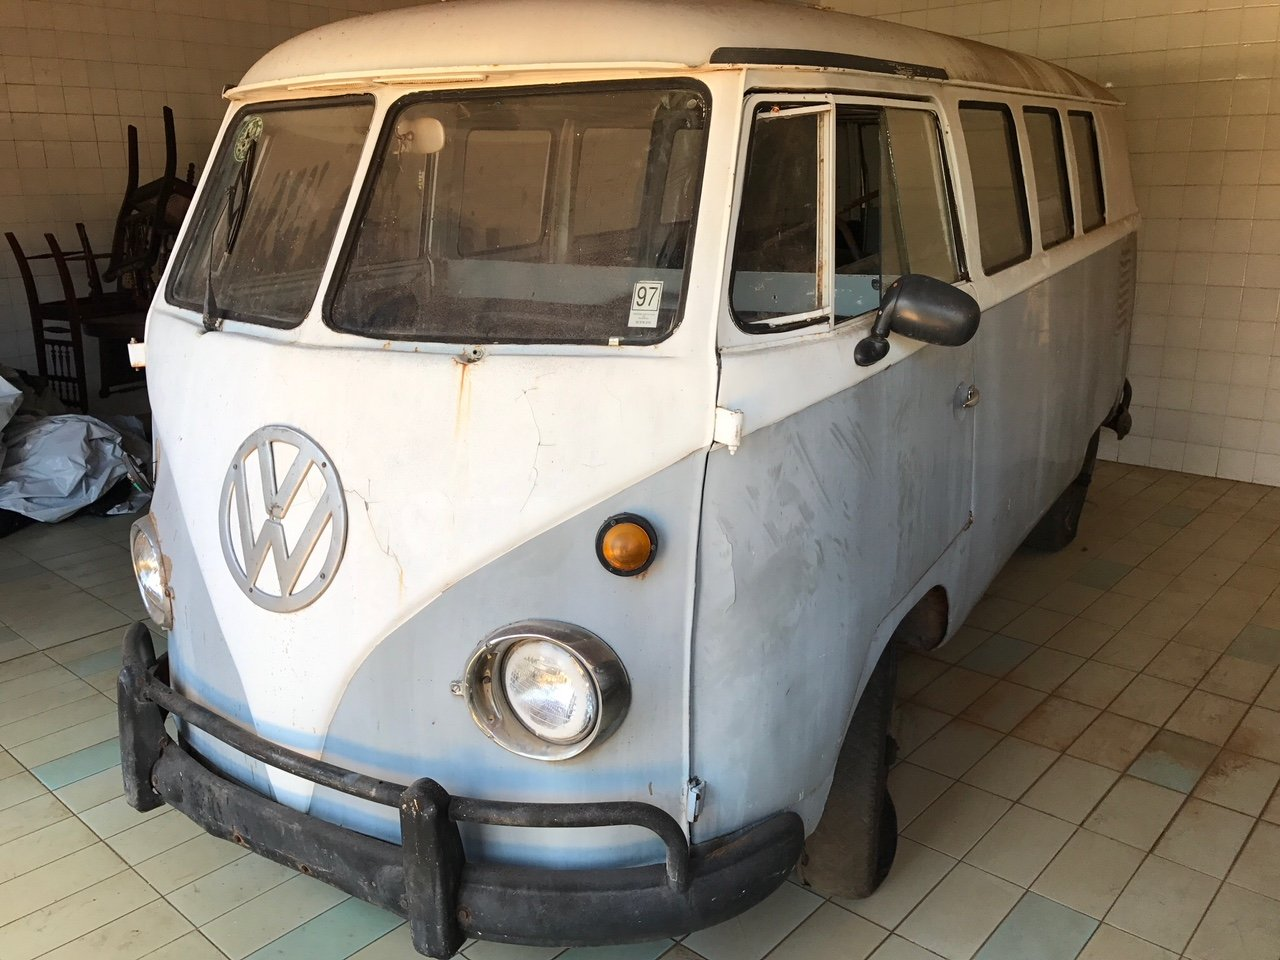 VOLKSWAGEN T1 ORIGINAL 1959 VW KOMBI SPLIT SCREEN CAMPER For Sale (picture 1 of 6)